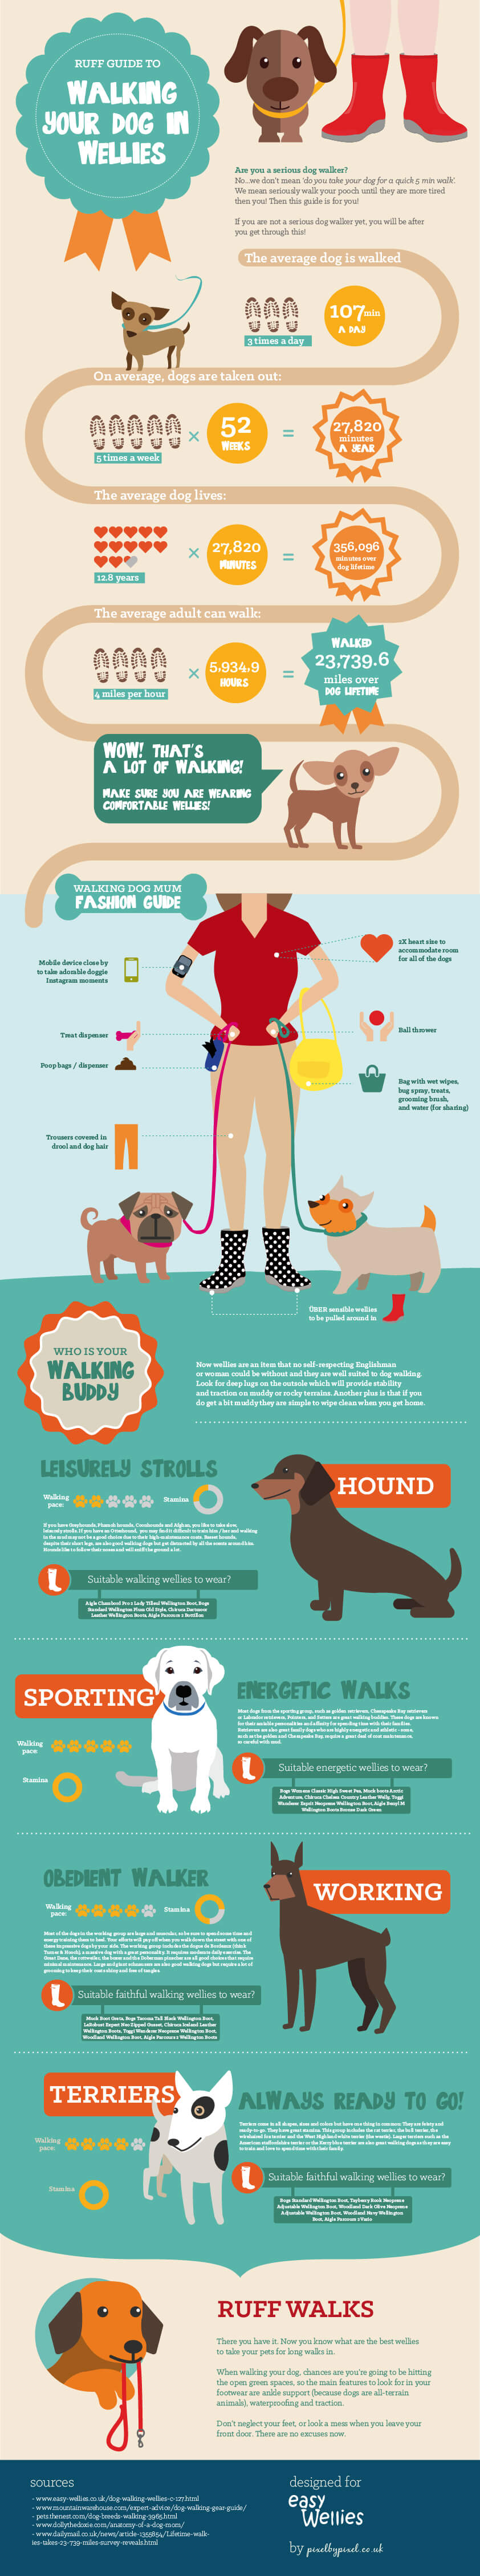 dog-walking-infographic